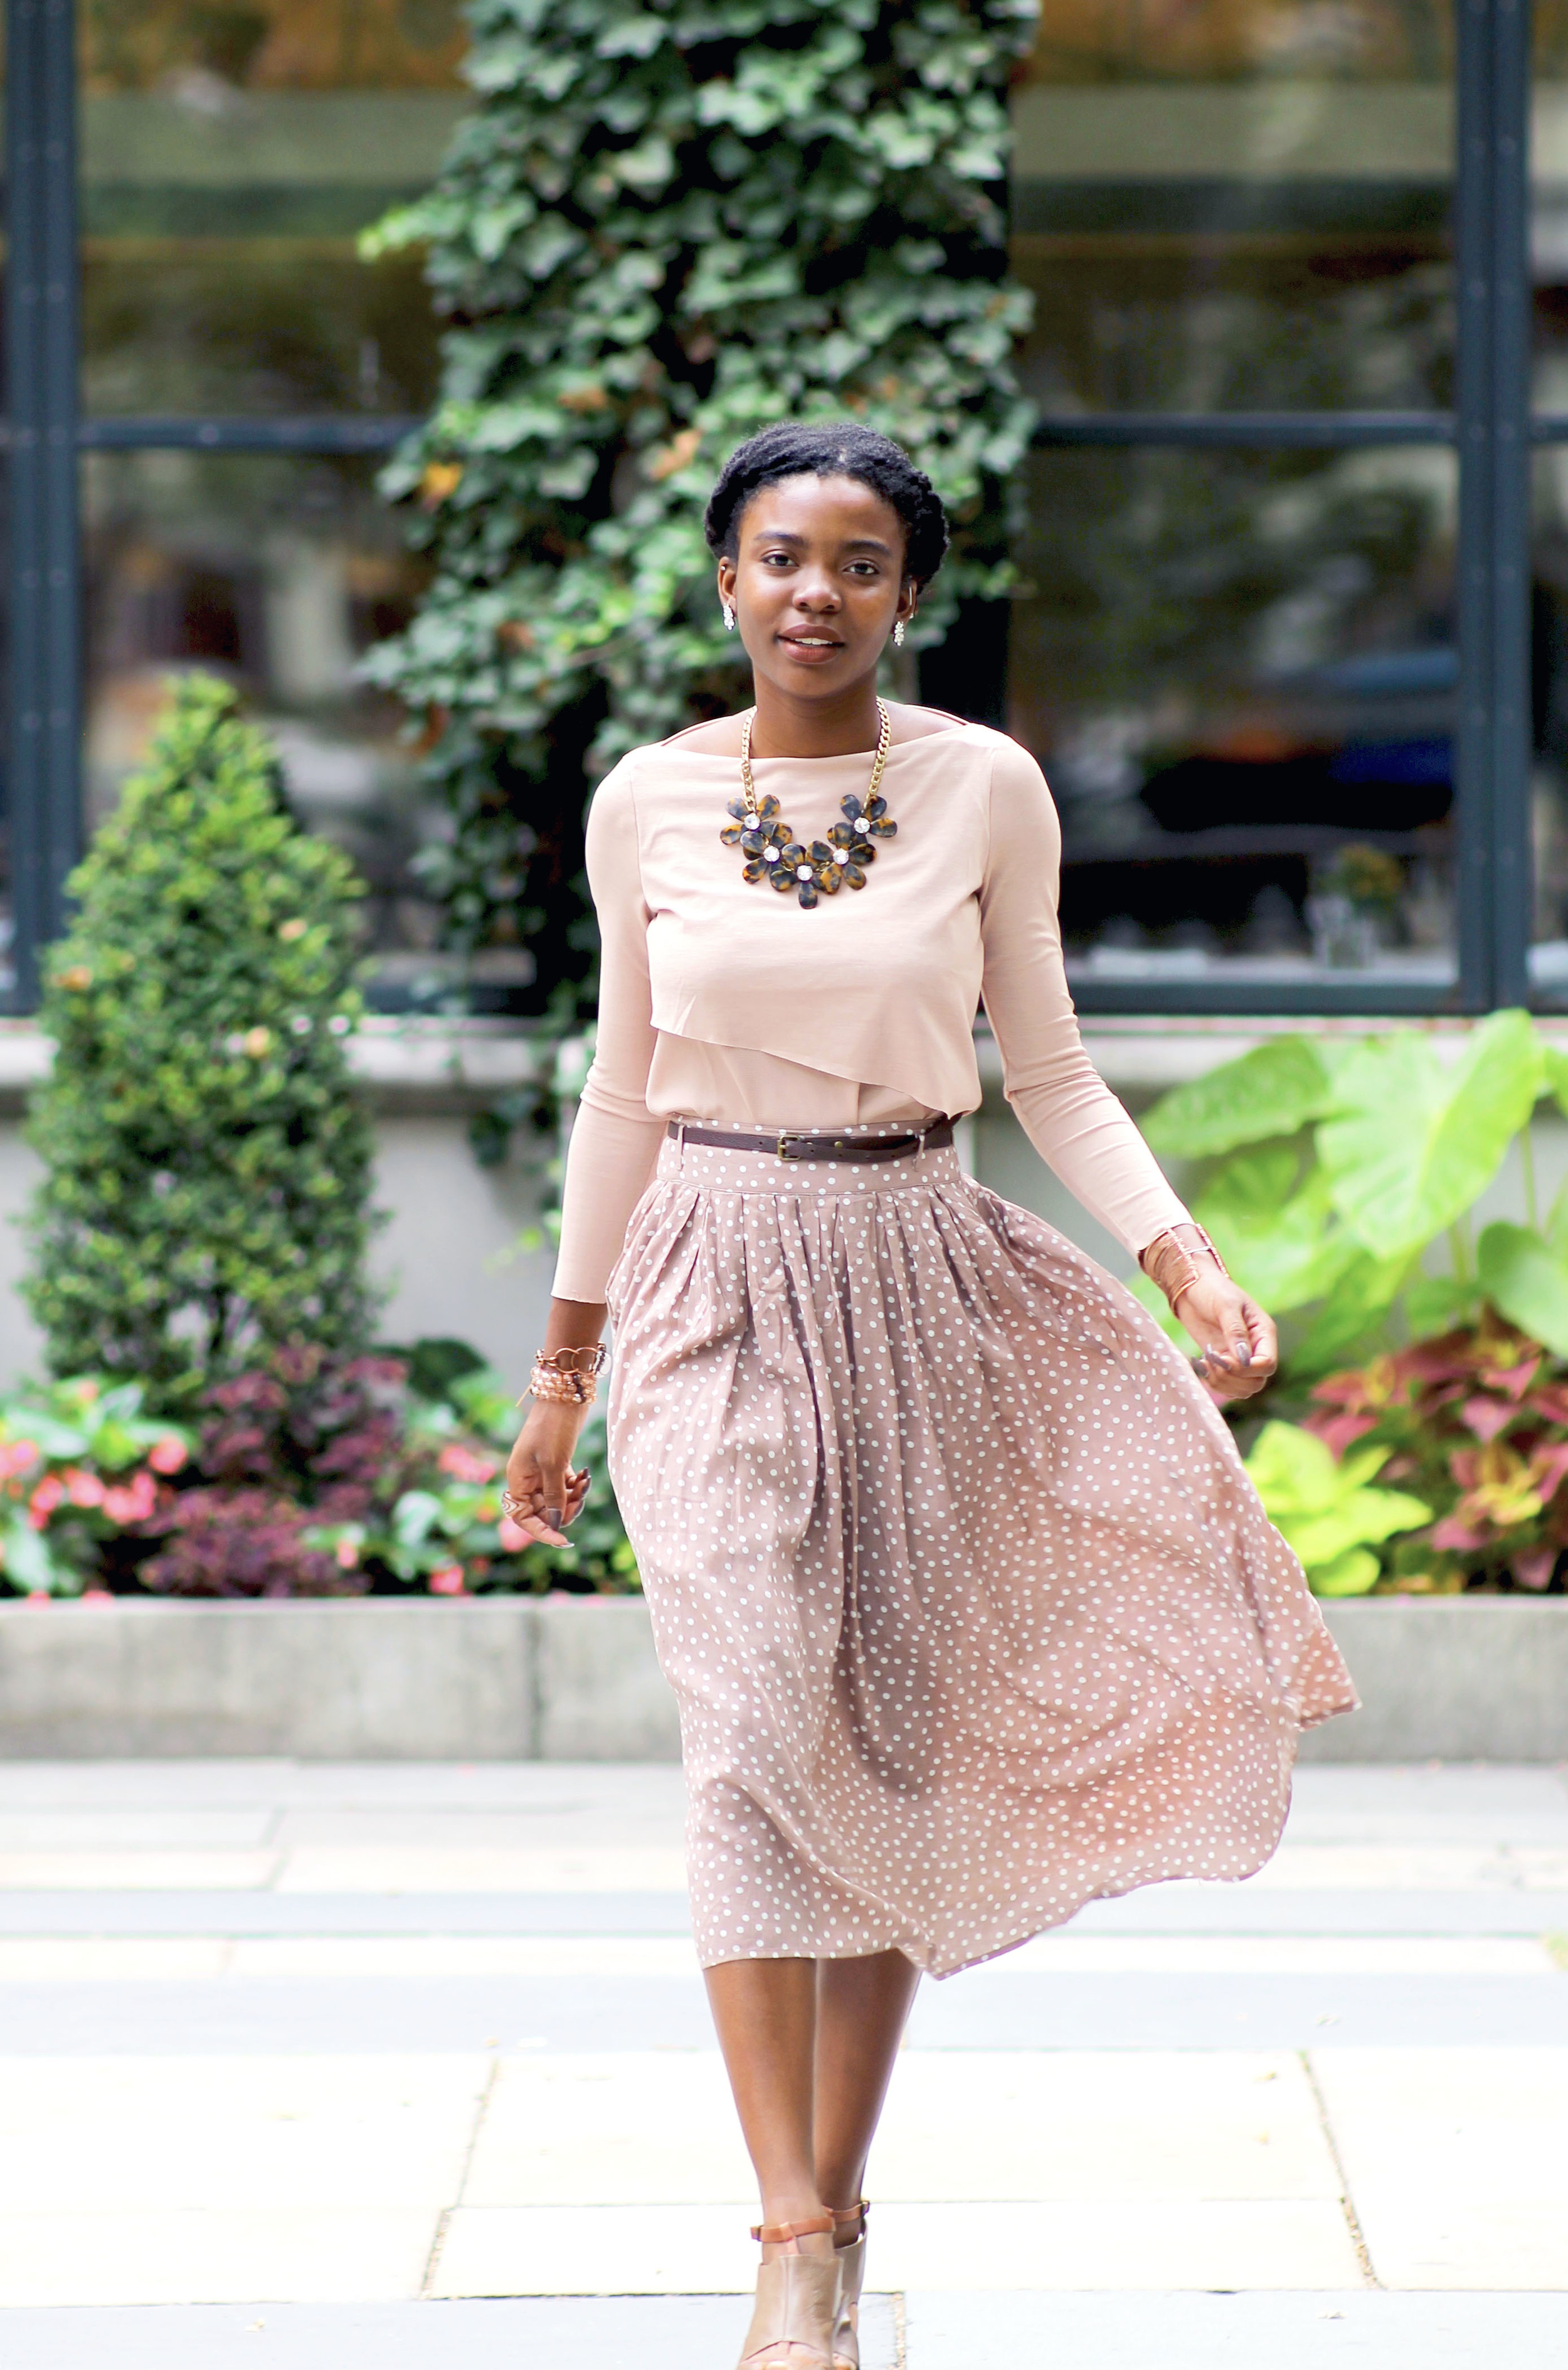 Shirt: Zara; Skirt: Forever 21; Shoes: Nine West; Bag: Coach; Earrings: Forever 21; Necklace: J. Crew